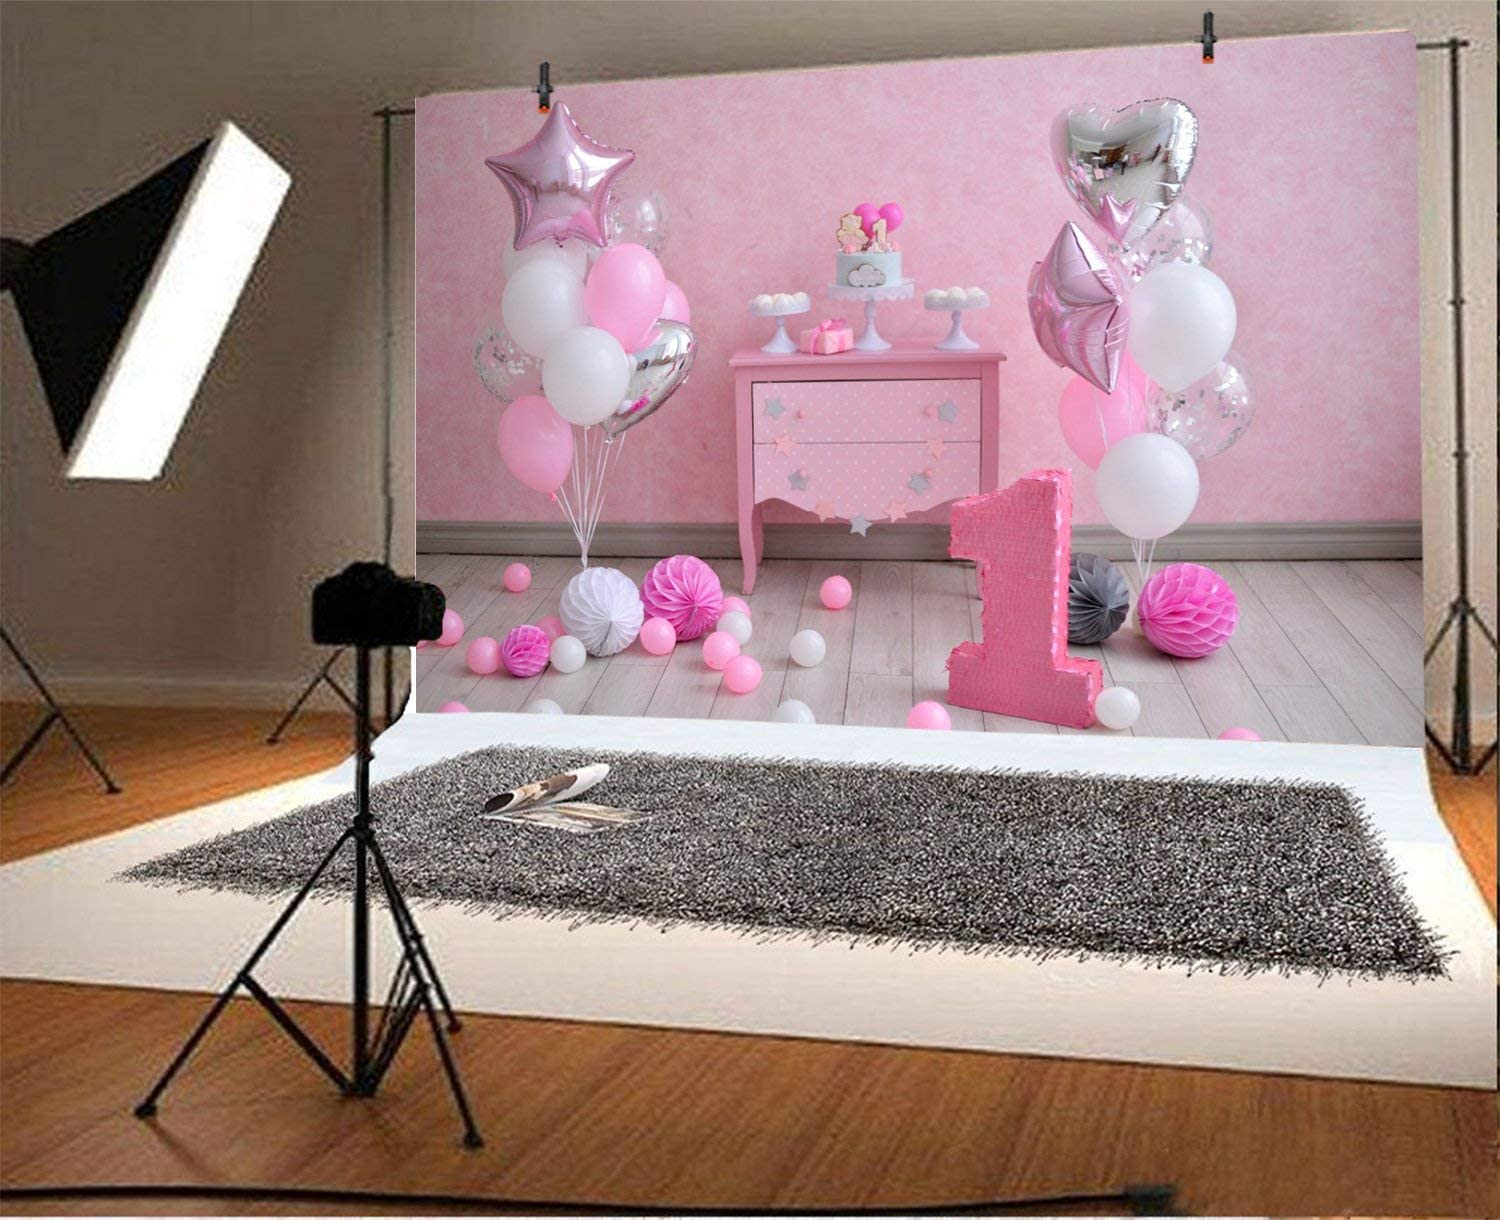 GoEoo 9x6ft Pink Babyroom 1st Birthday Photo Props Decoration Balloons Honeycomb Paper Flowers Poms Girl Little Princess Cake Smash Photography Backdrop Photo Studio Props